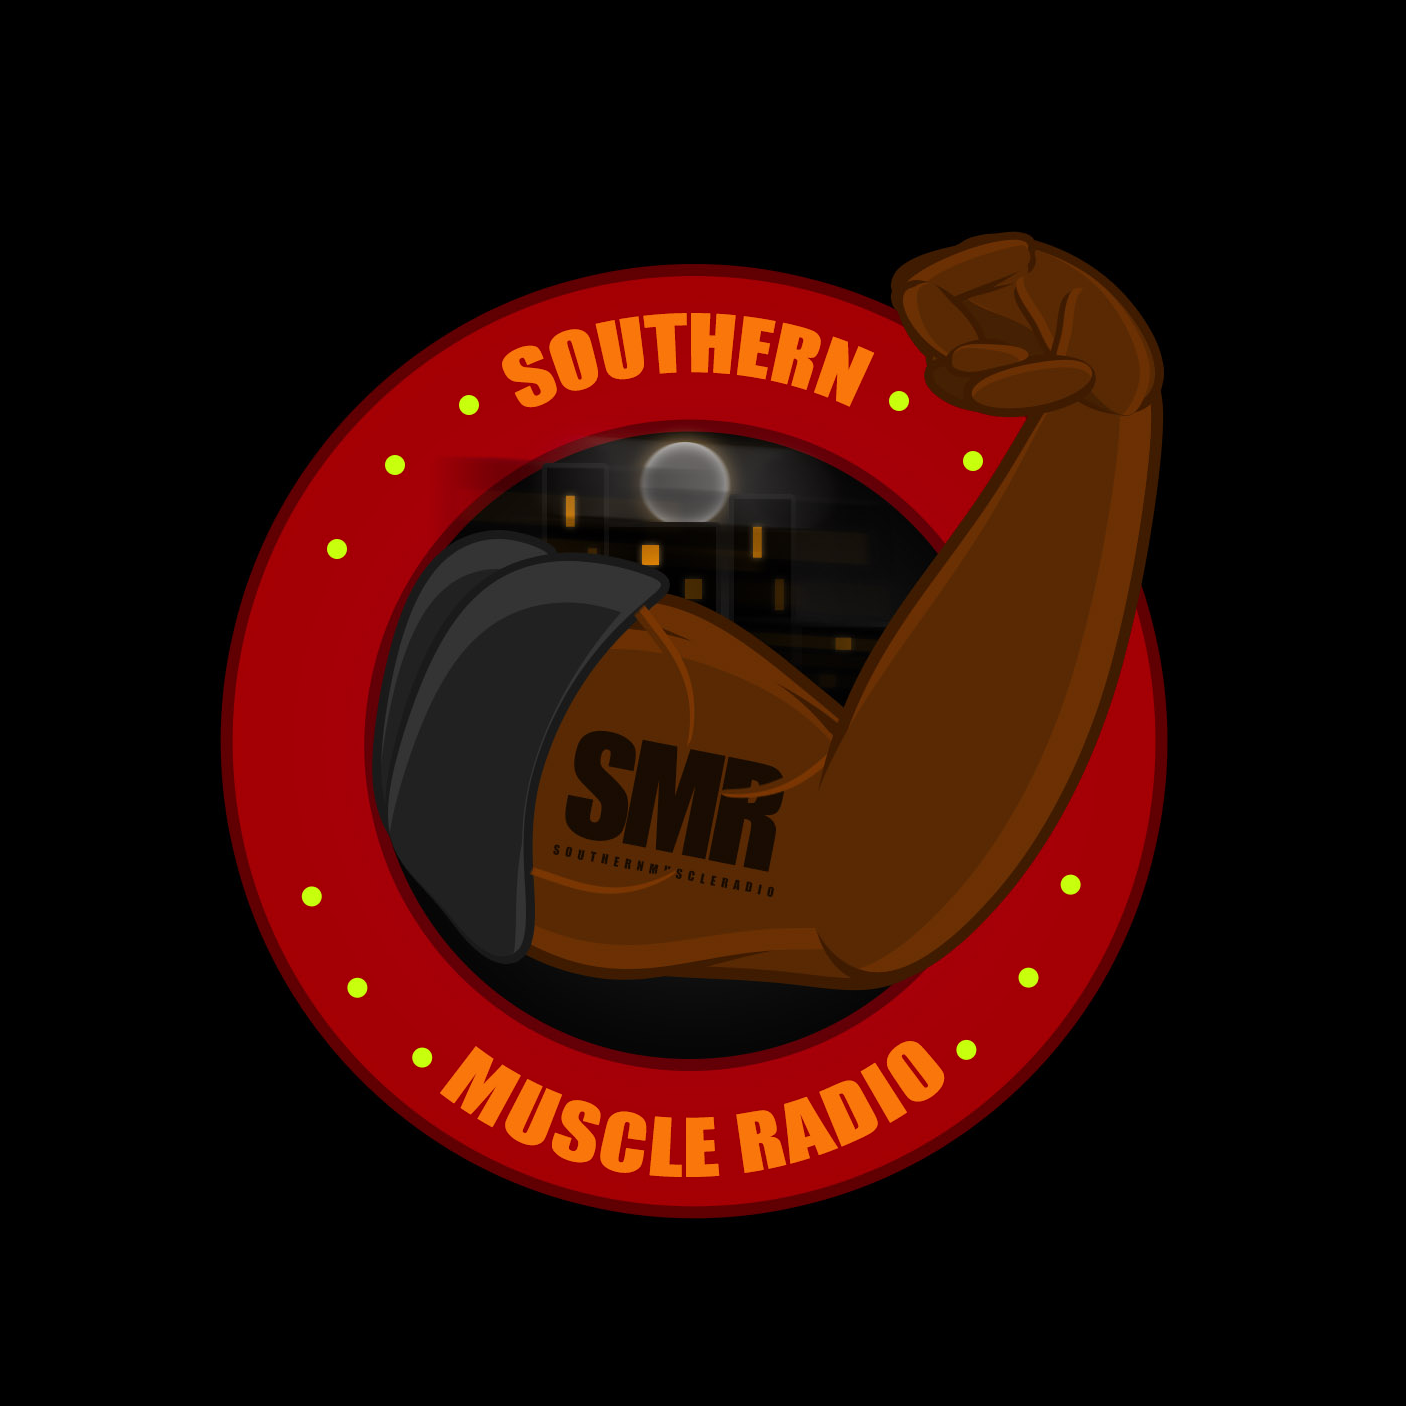 Southern Muscle Radio